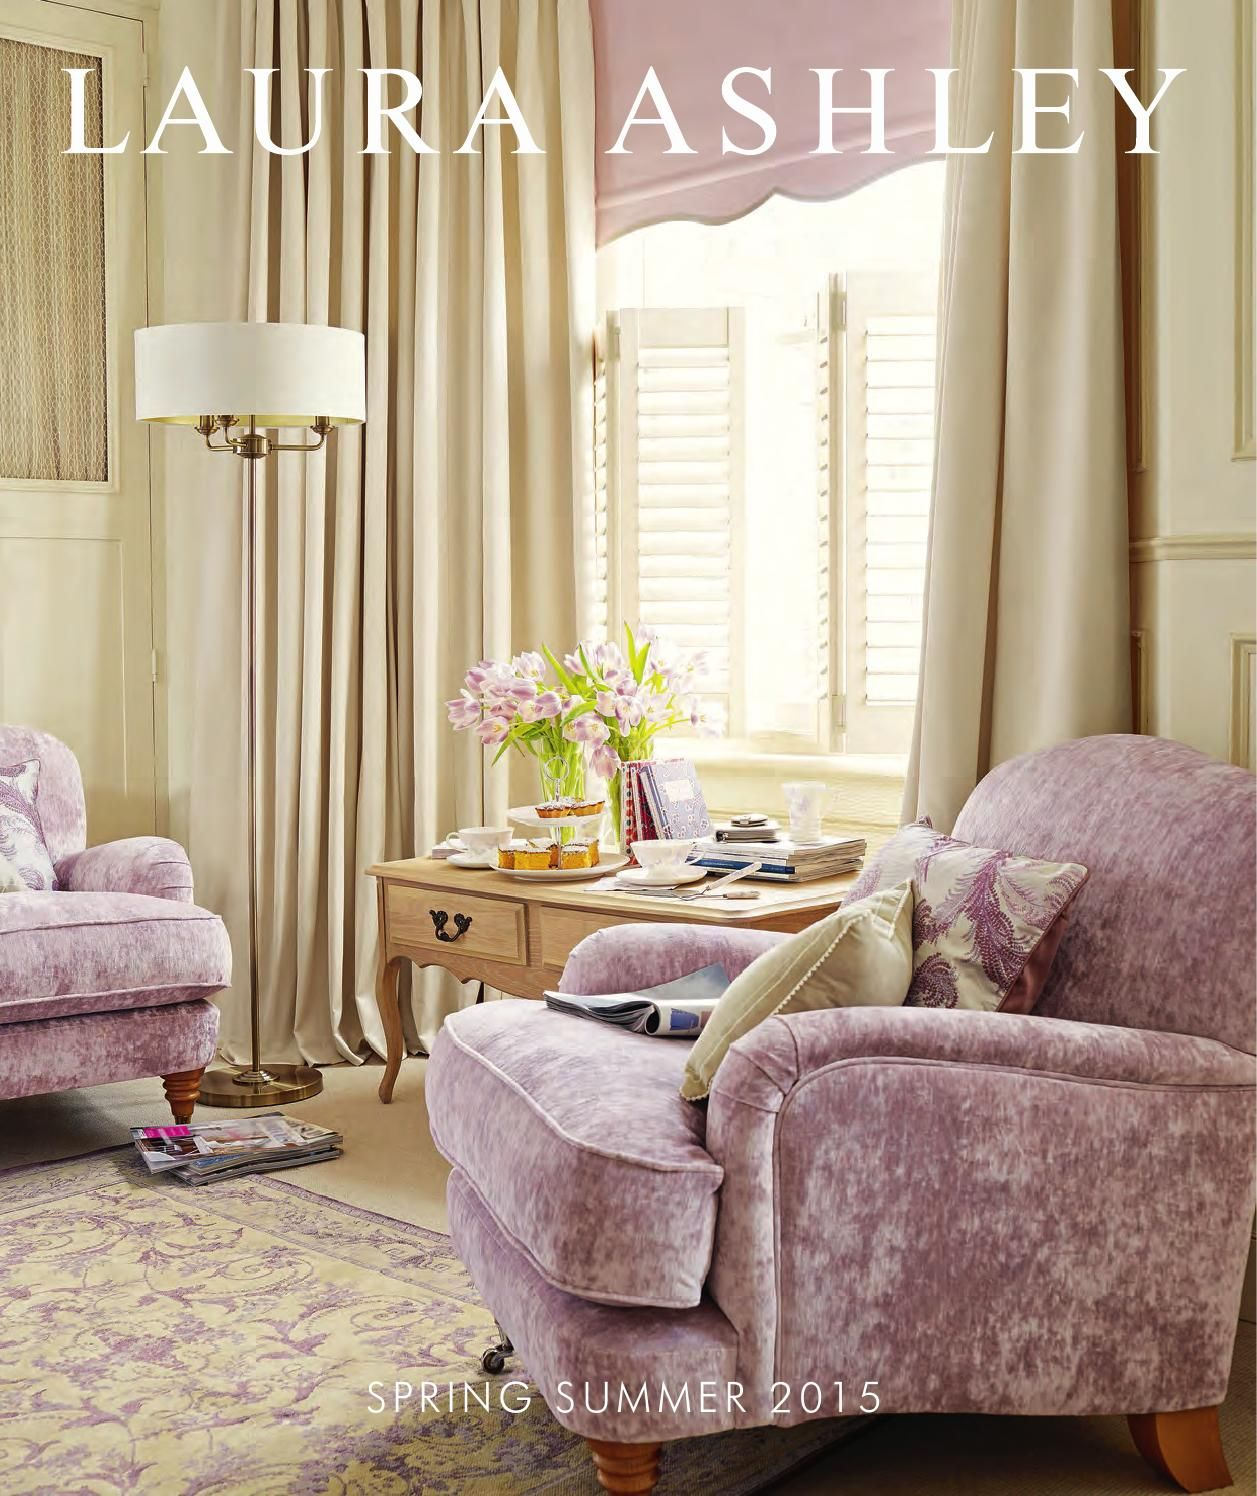 LAURA ASHLEY Spring Summer 2015 Catalogue